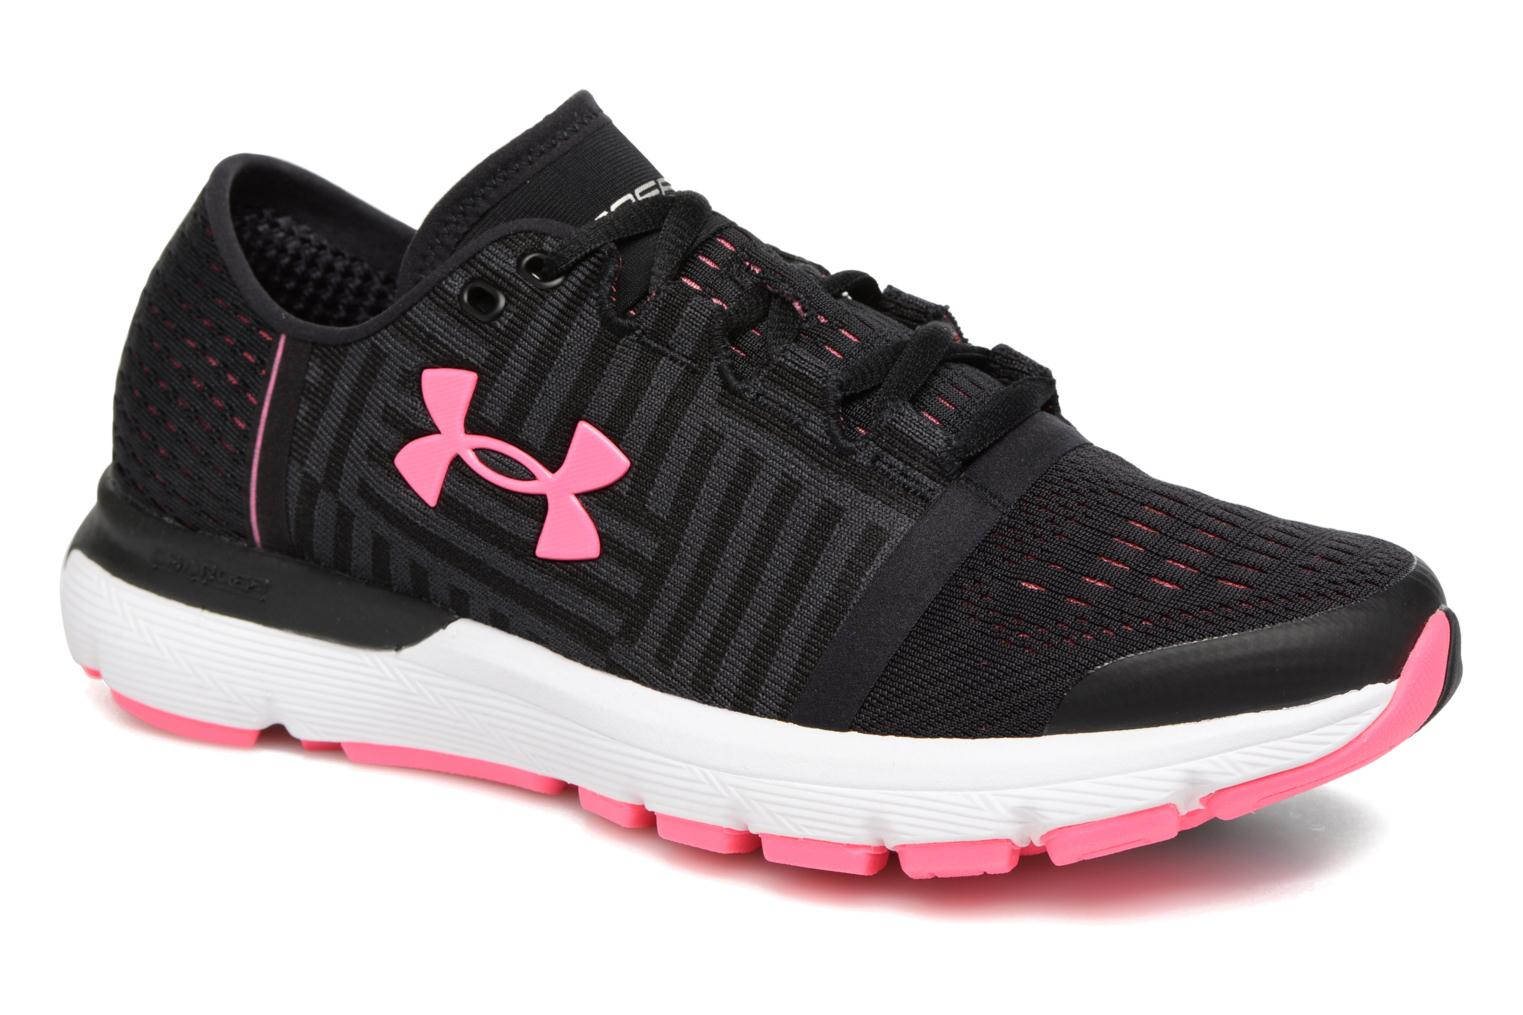 best website dcb97 78210 Zapatos promocionales Under Armour Speedform Gemini 3 W (Rosa) - Zapatillas  de deporte Los